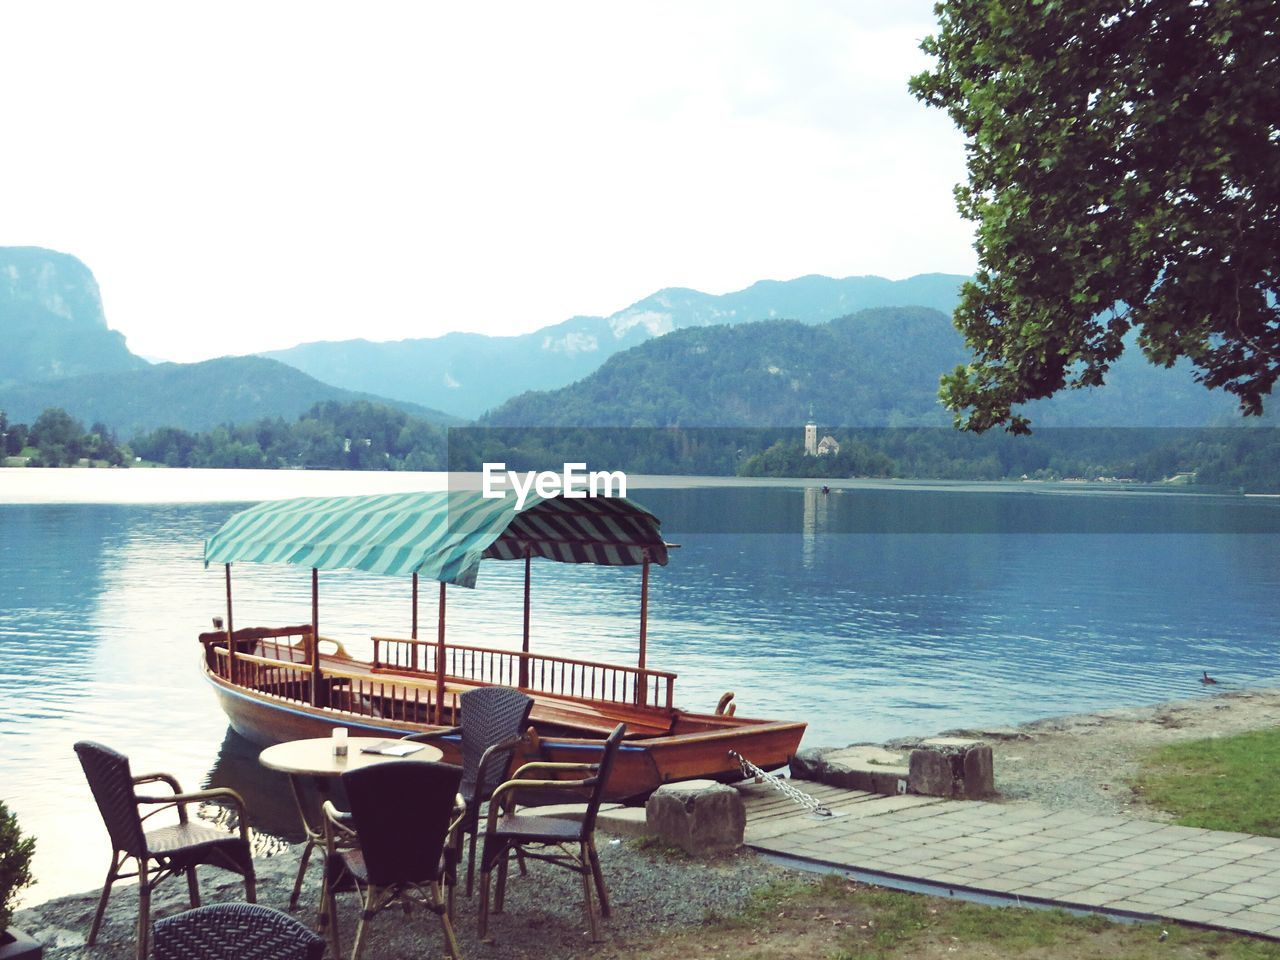 water, chair, table, mountain, nature, scenics, outdoors, absence, tranquility, no people, lake, day, beauty in nature, sky, tree